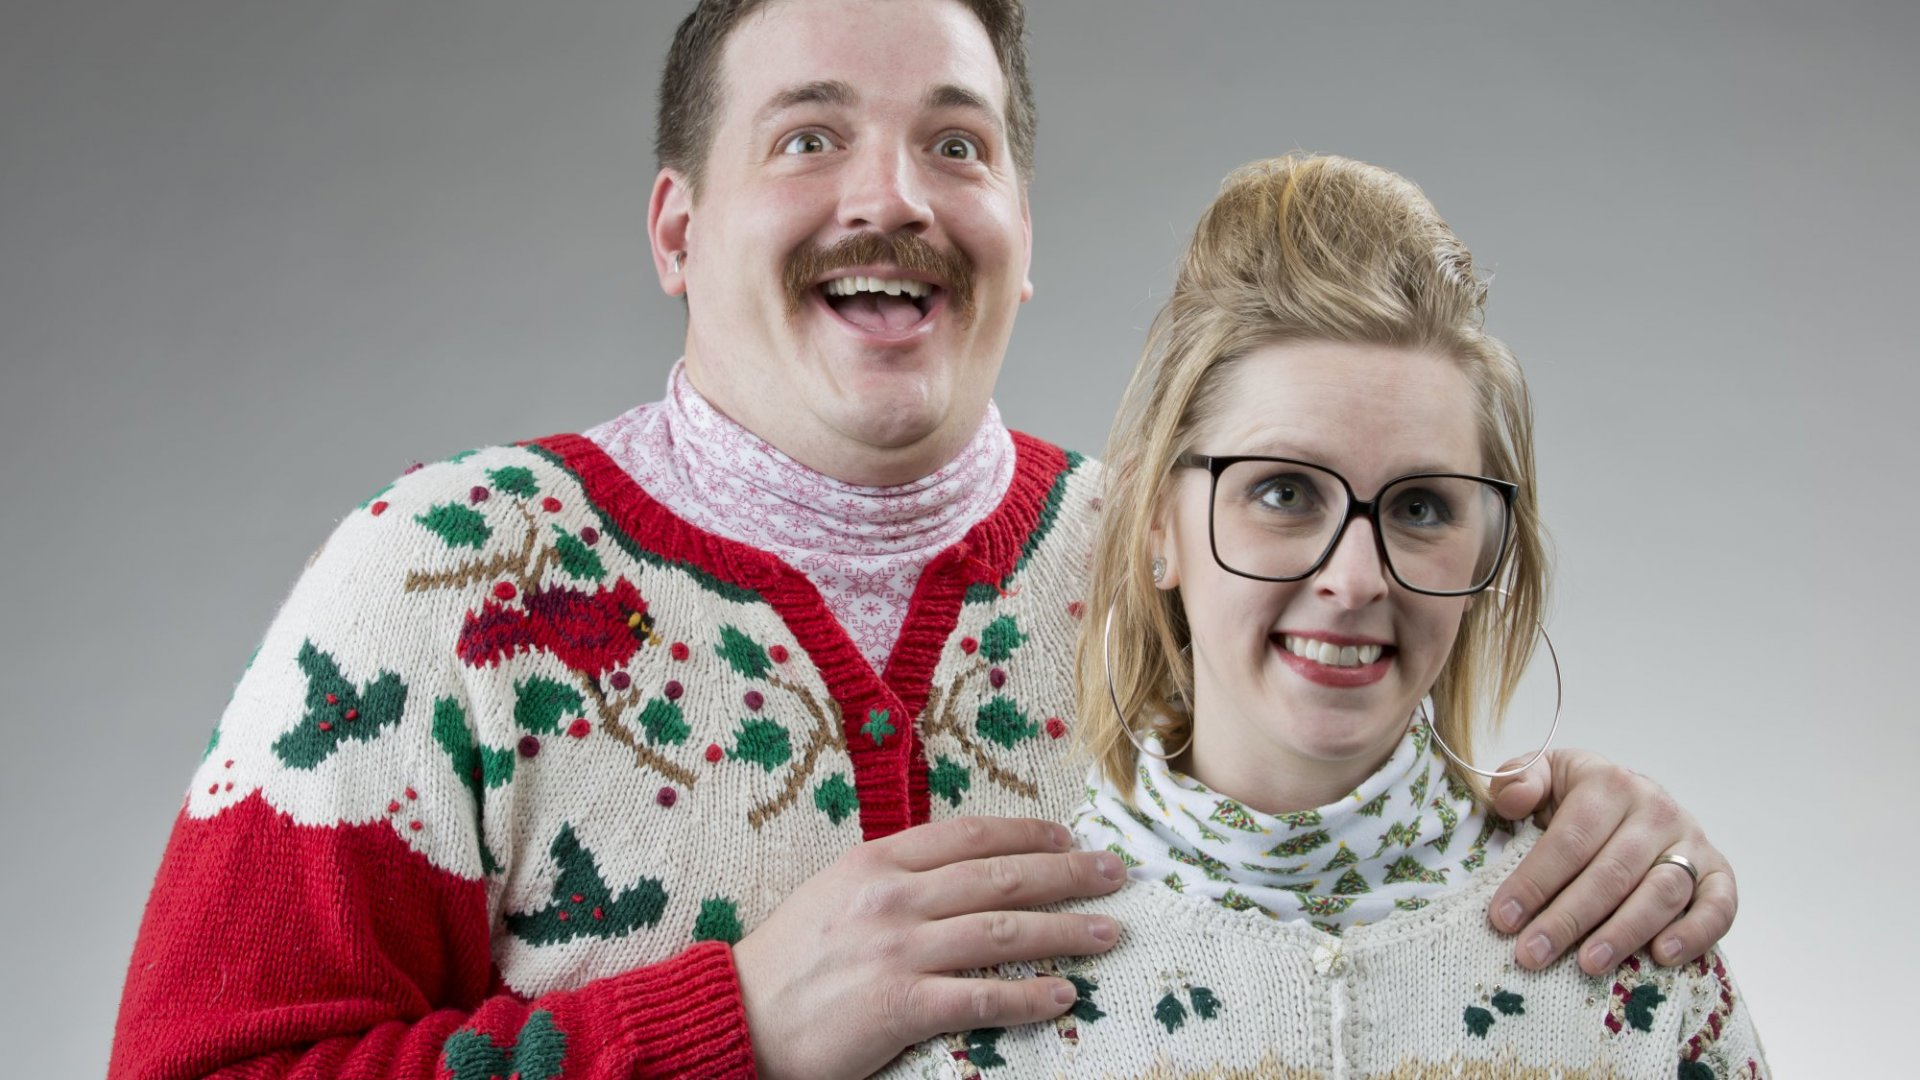 You Should Celebrate National Ugly Christmas Sweater Day in Your Office